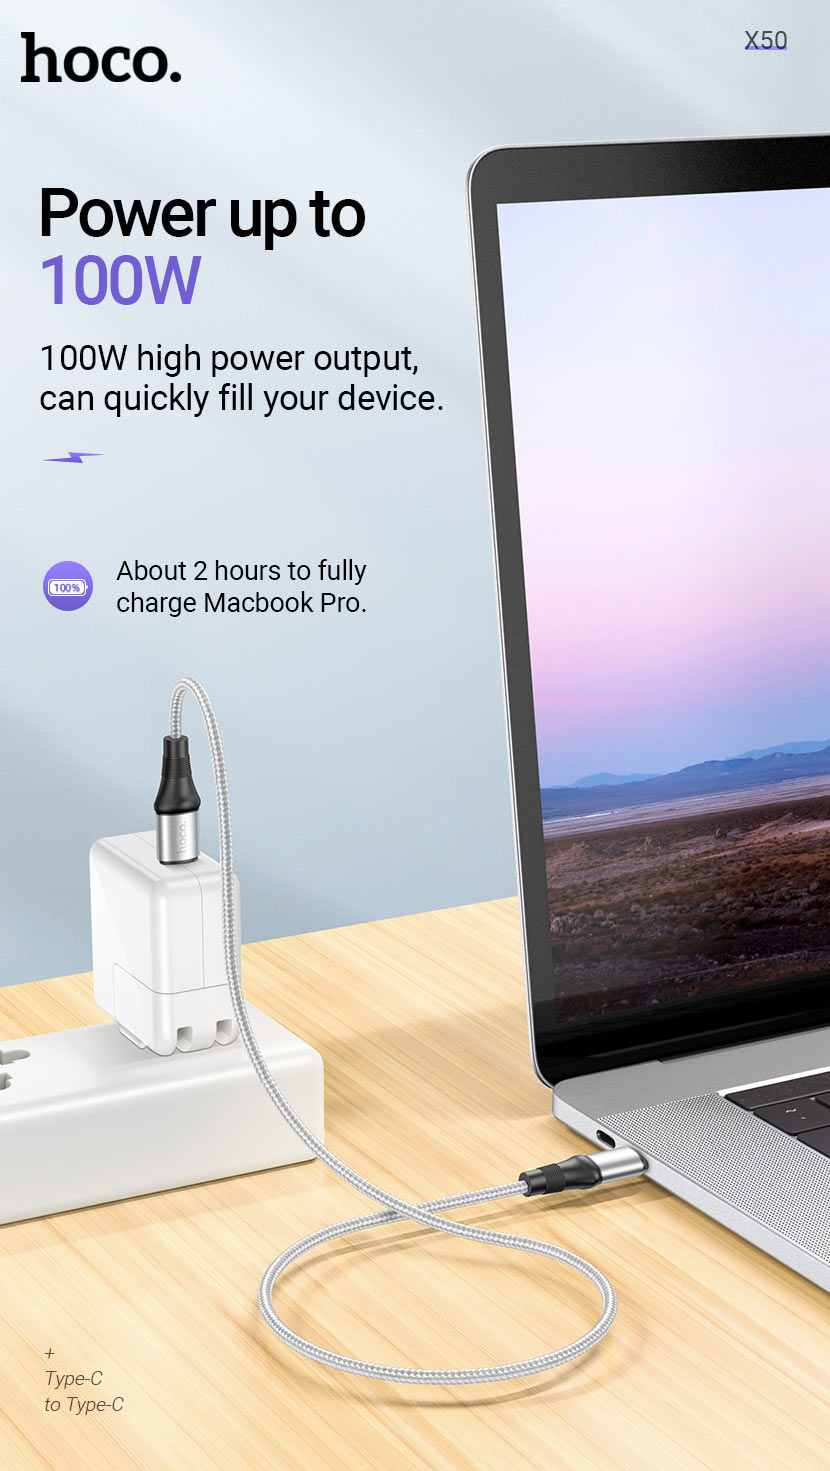 hoco news x50 exquisito charging data cable power 100w en